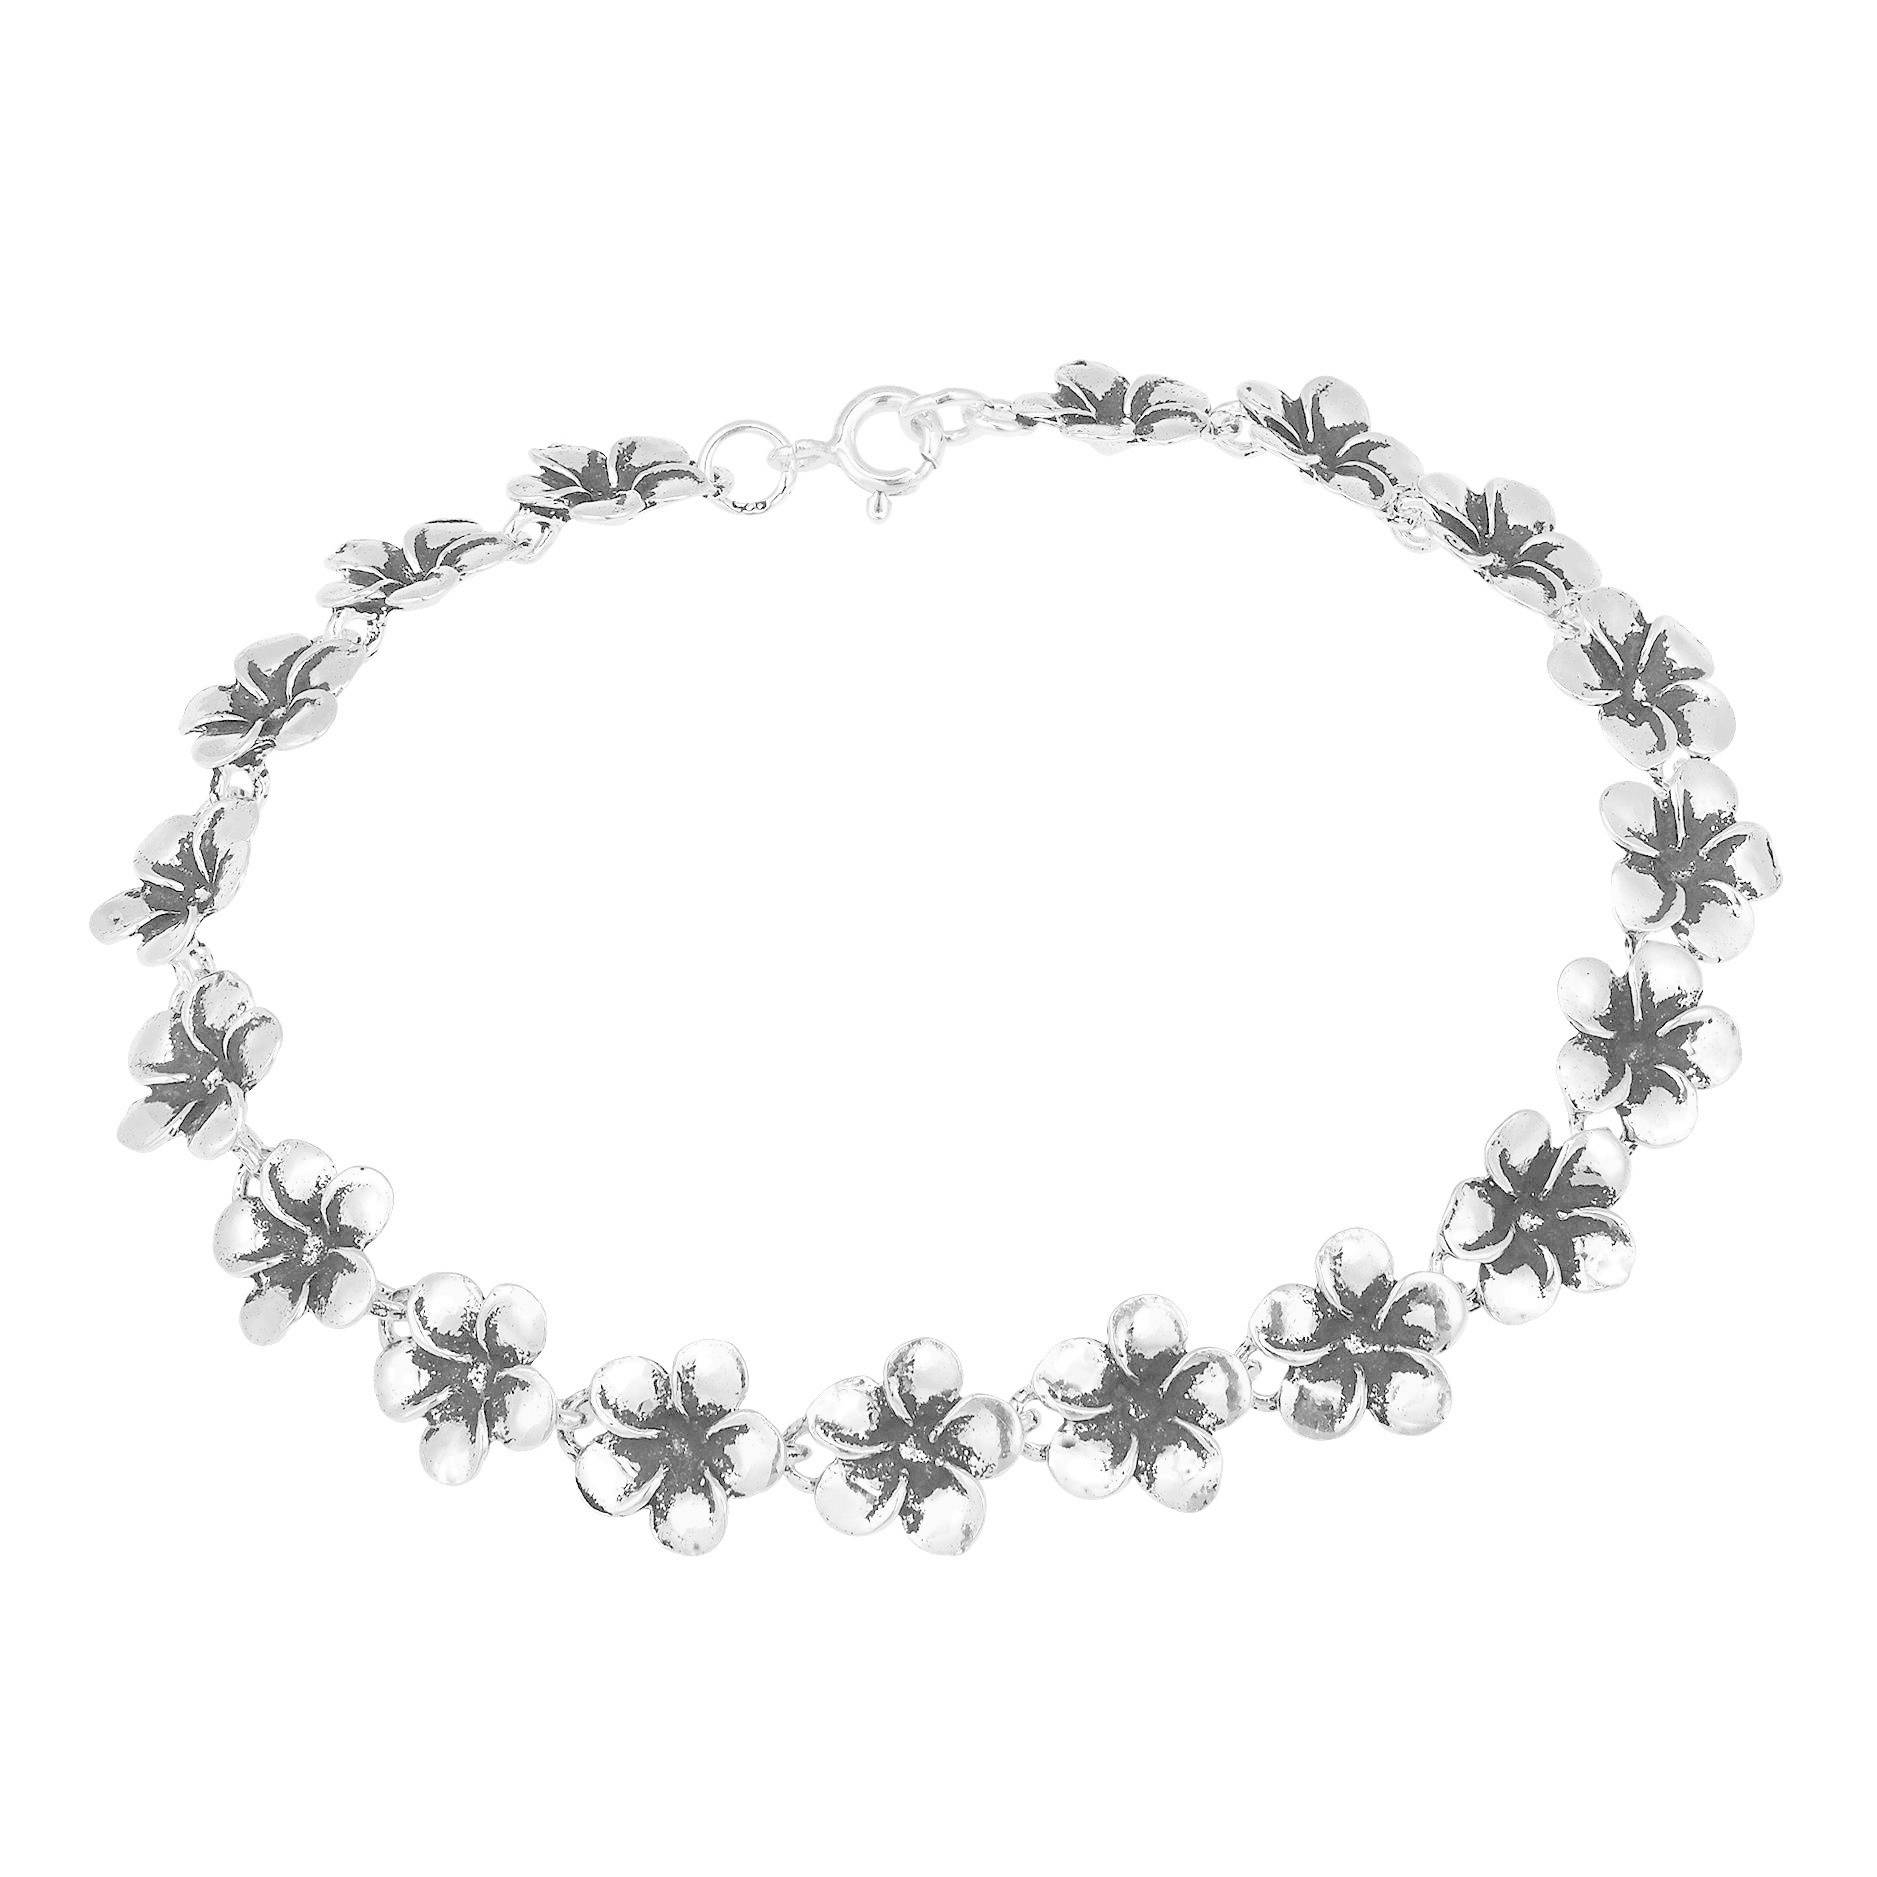 p plumeria anklet s price brand hawaii lowest sterling foot ygp flower silver anklets chain cz new